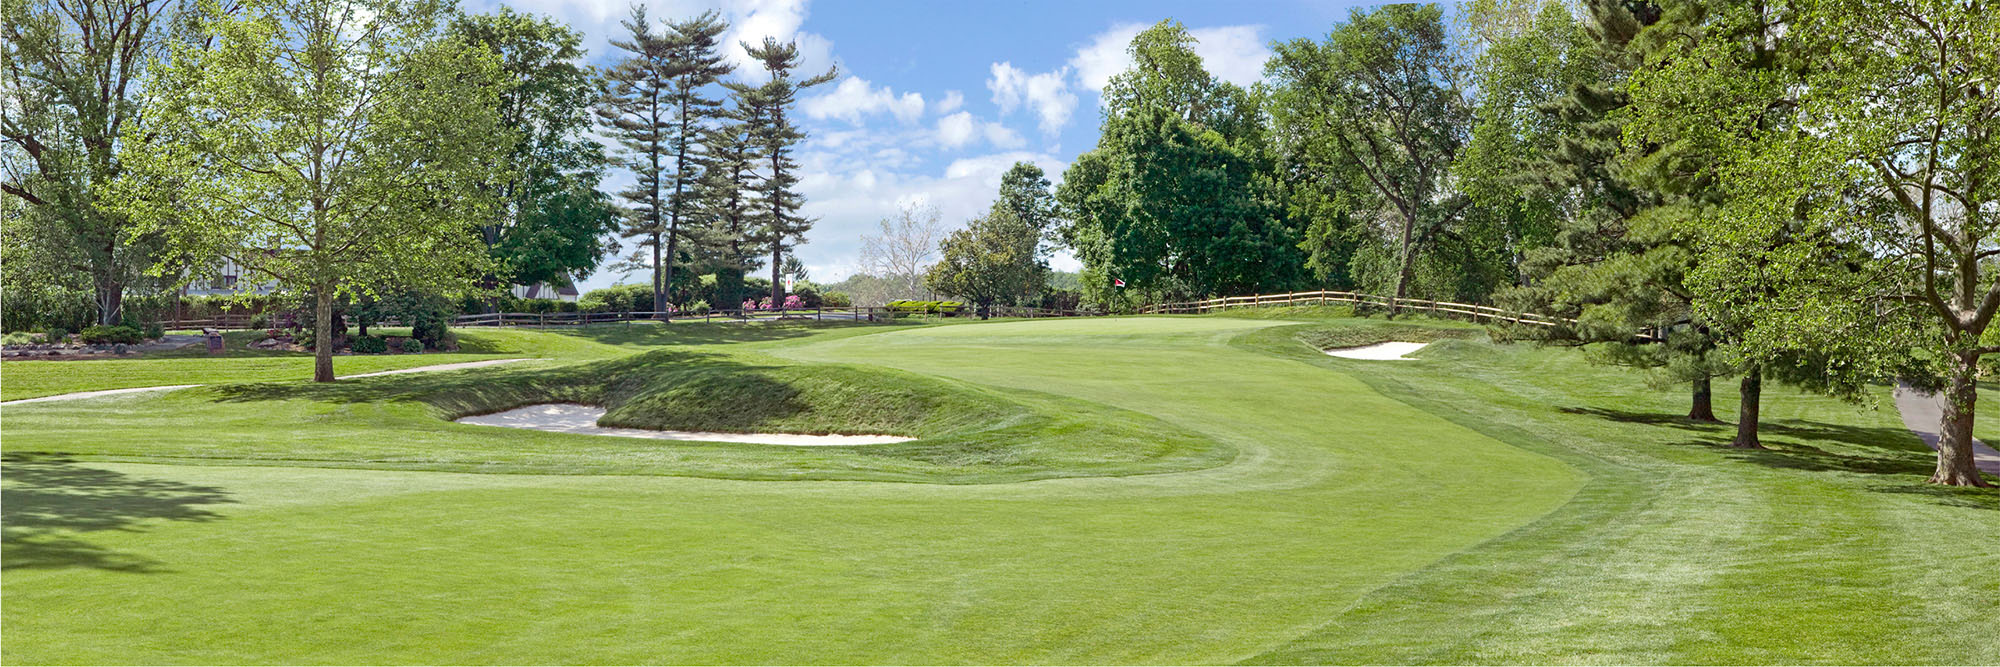 Golf Course Image - LuLu Country Club No. 7